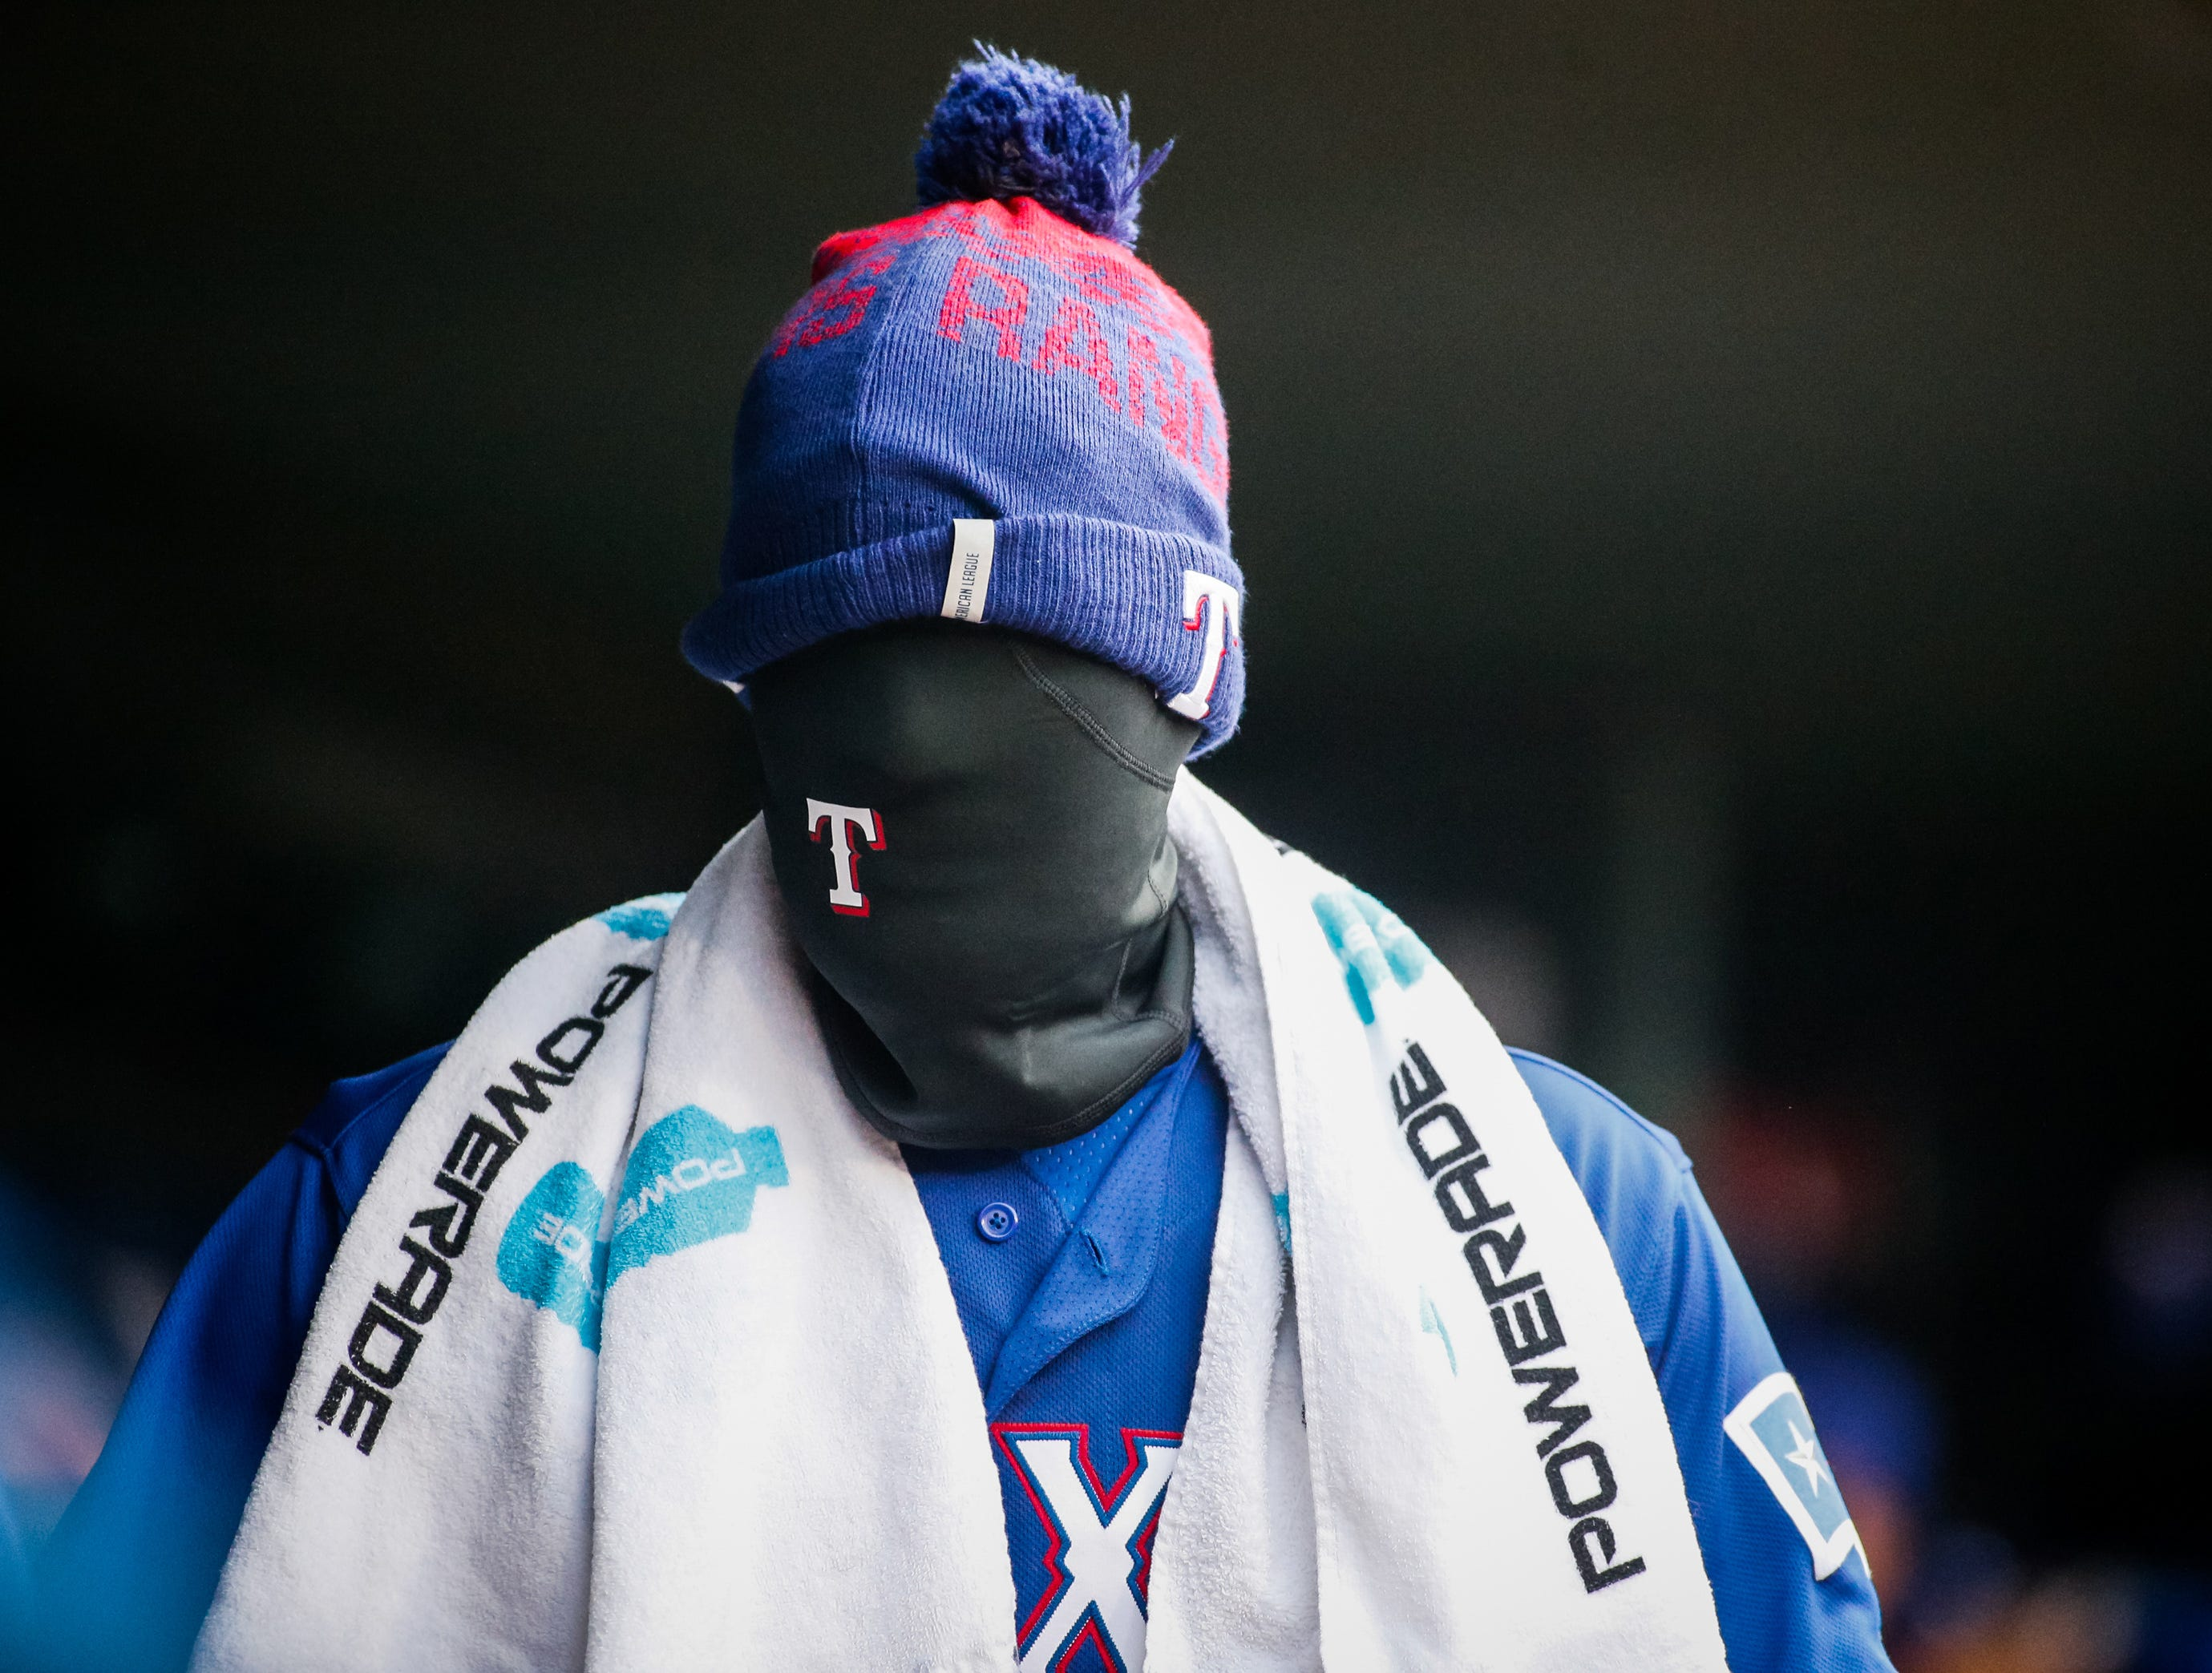 April 7: Texas Rangers right fielder Nomar Mazara makes his way into the dugout prior to a game against the Toronto Blue Jays at Globe Life Park in Arlington.